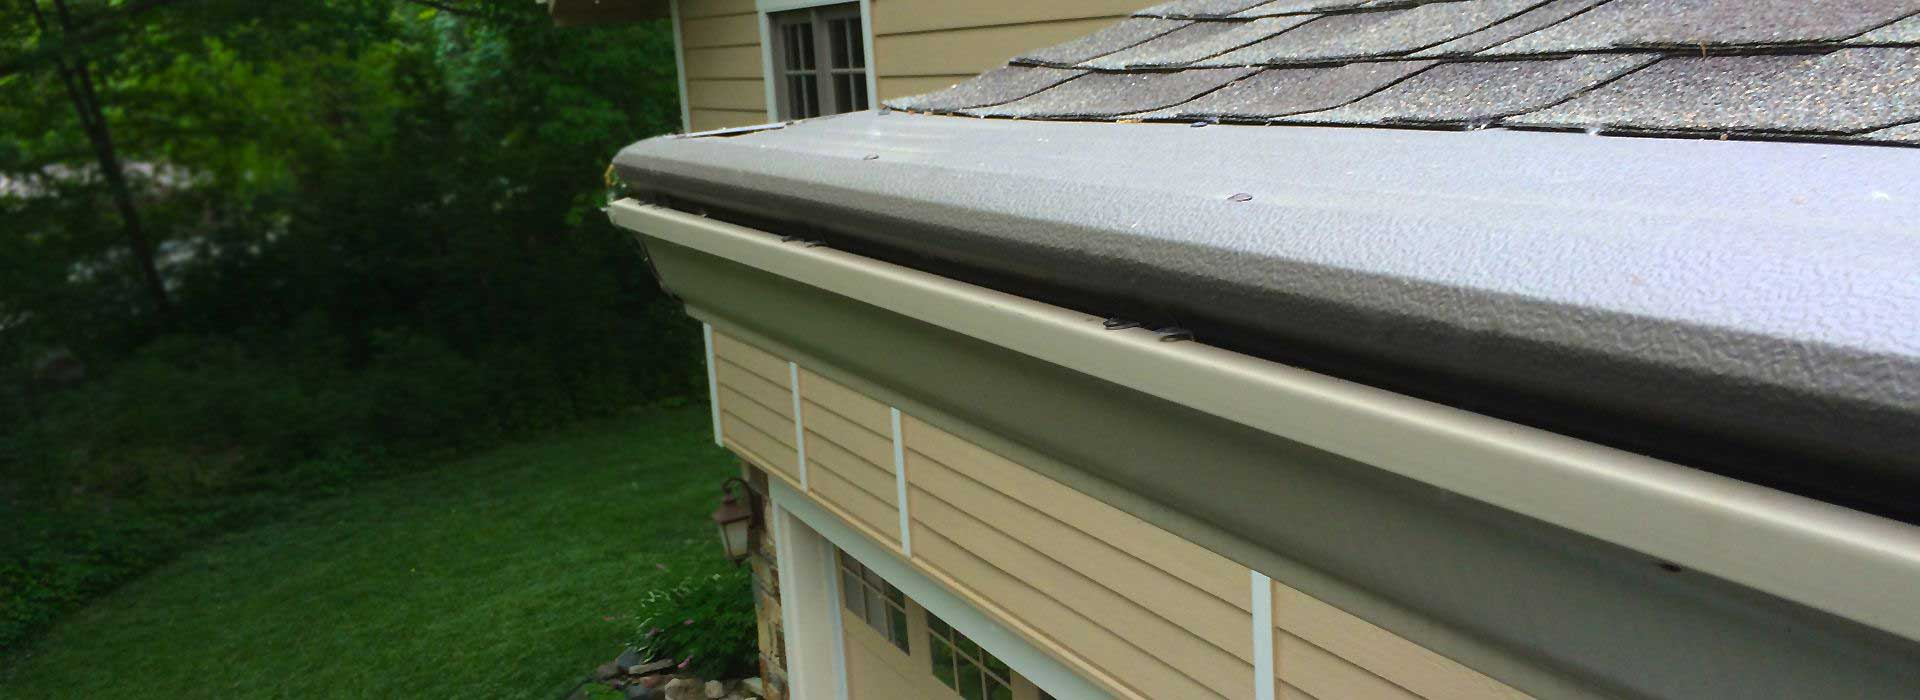 best gutter systems in houston tx